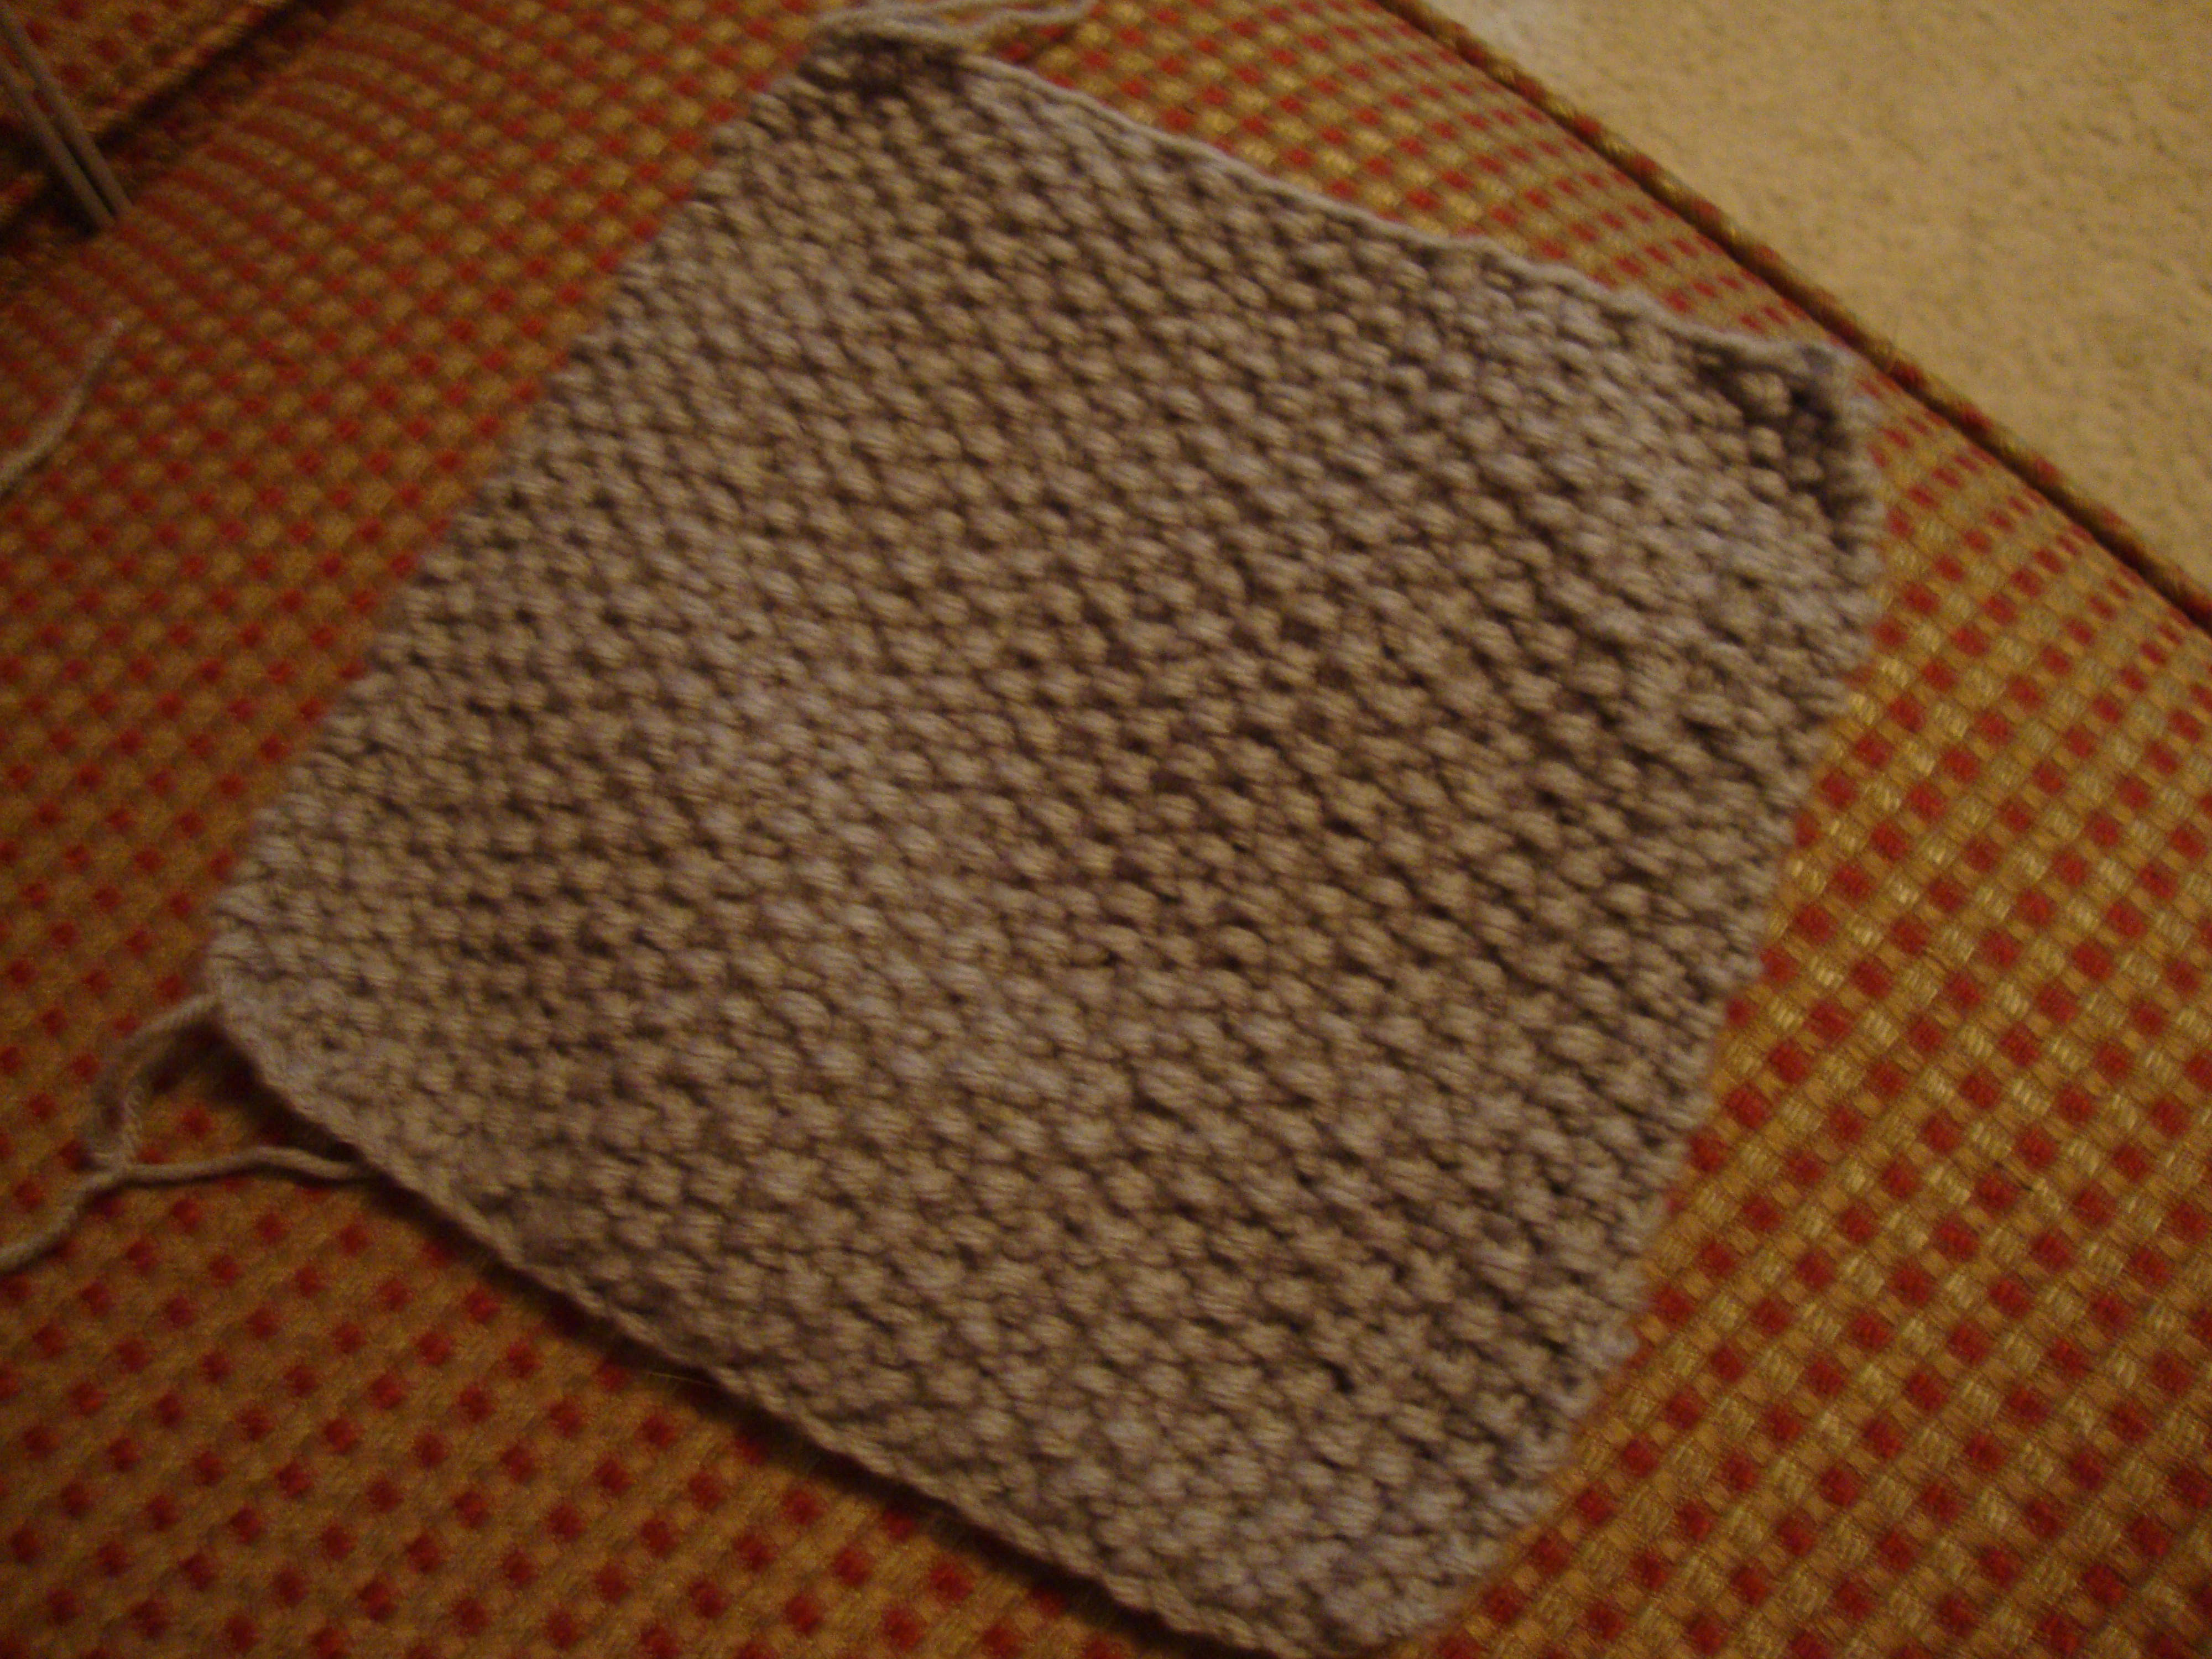 Knitting Stitches Defined : Knitting Projects   For the Love of Felt